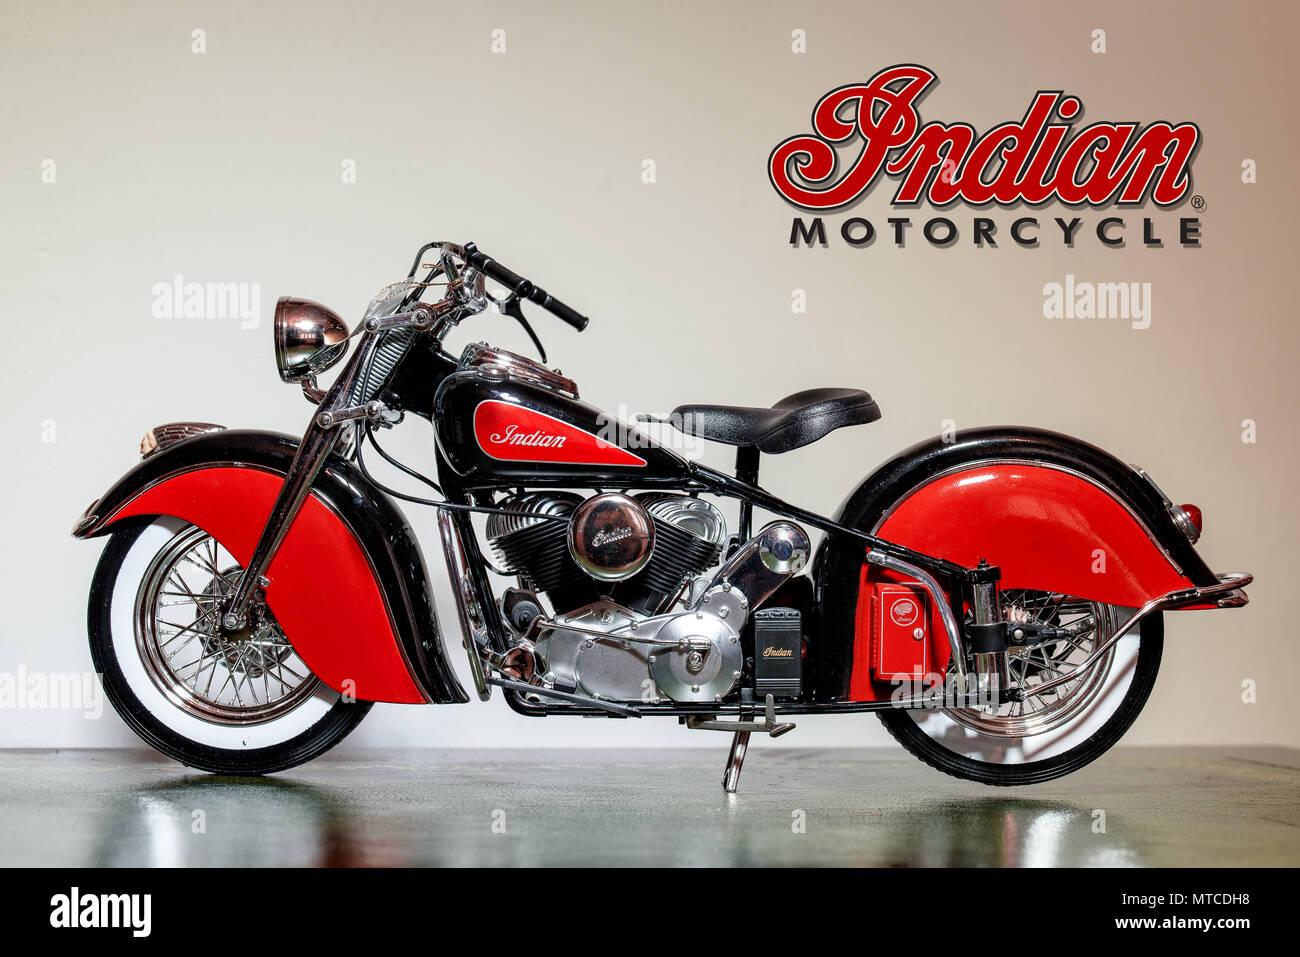 Cardiff, Wales, UK, July 26, 2015: Closeup of a Scale Model Indian Big Chief Motorcycle Stock Photo